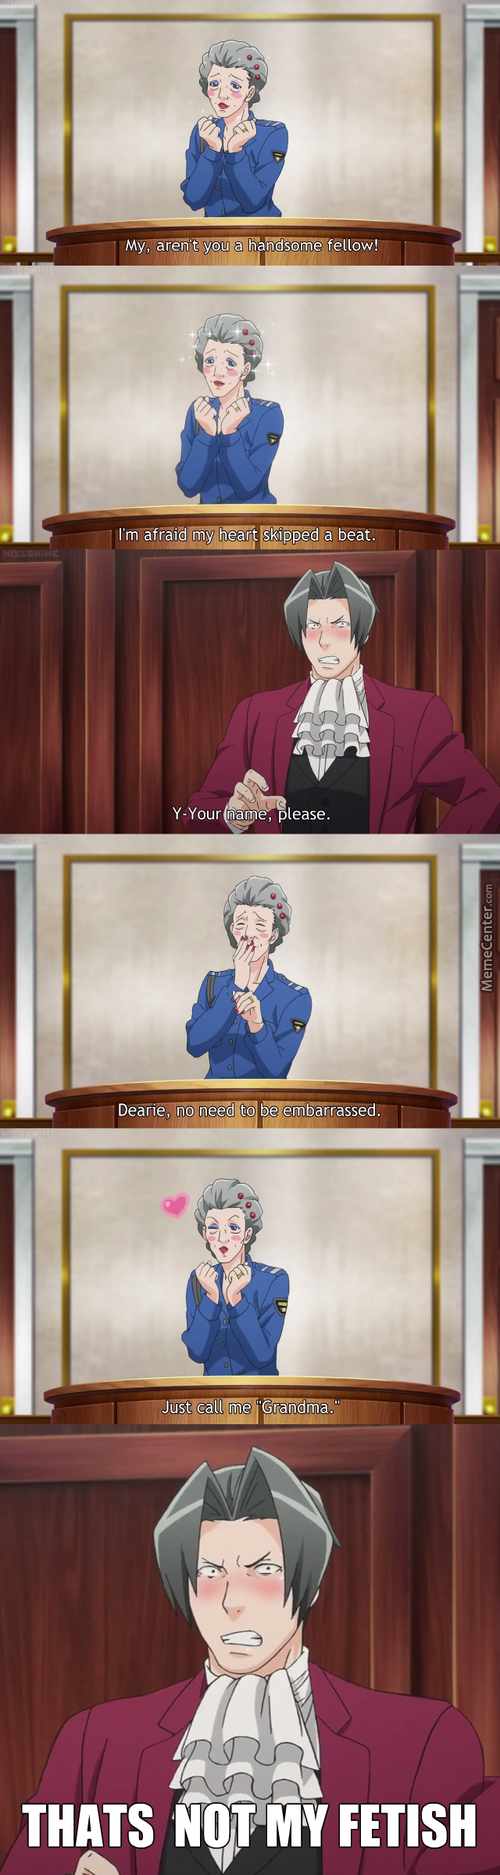 Edgeworth And Old Had Xxx Productions (Ace Attorney)